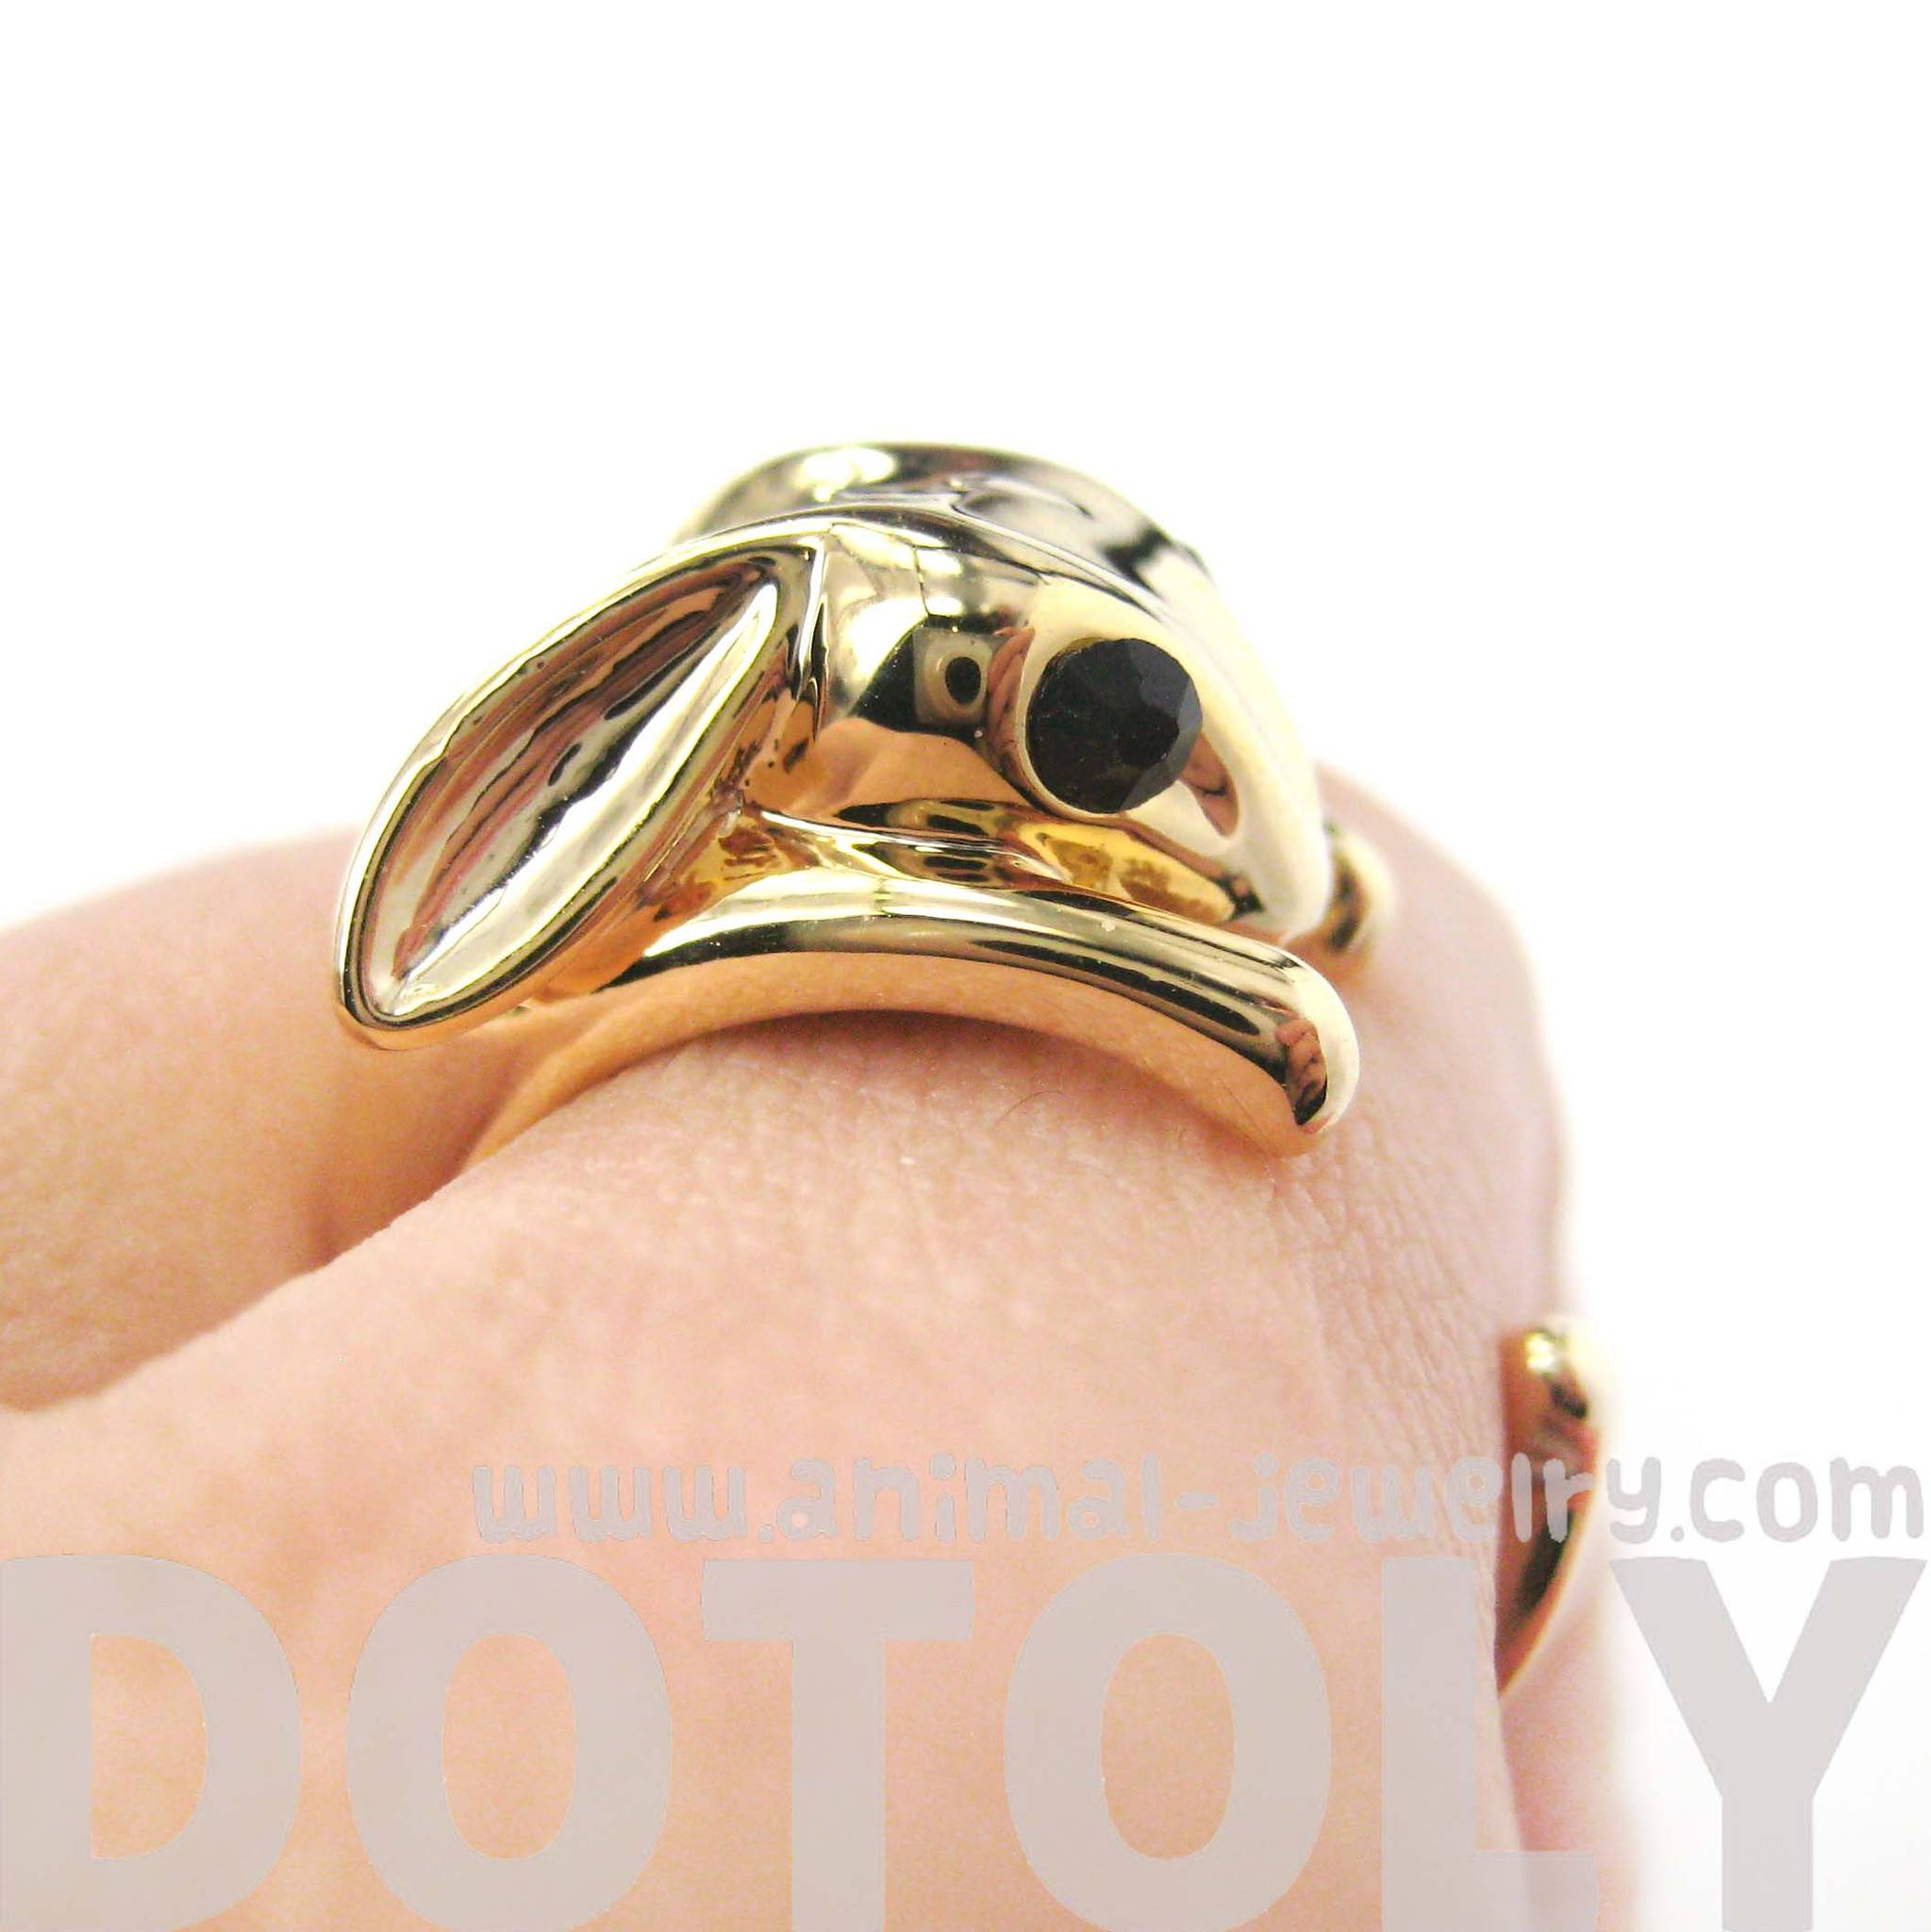 adorable-bunny-rabbit-shaped-animal-wrap-ring-in-shiny-gold-us-sizes-7-to-9